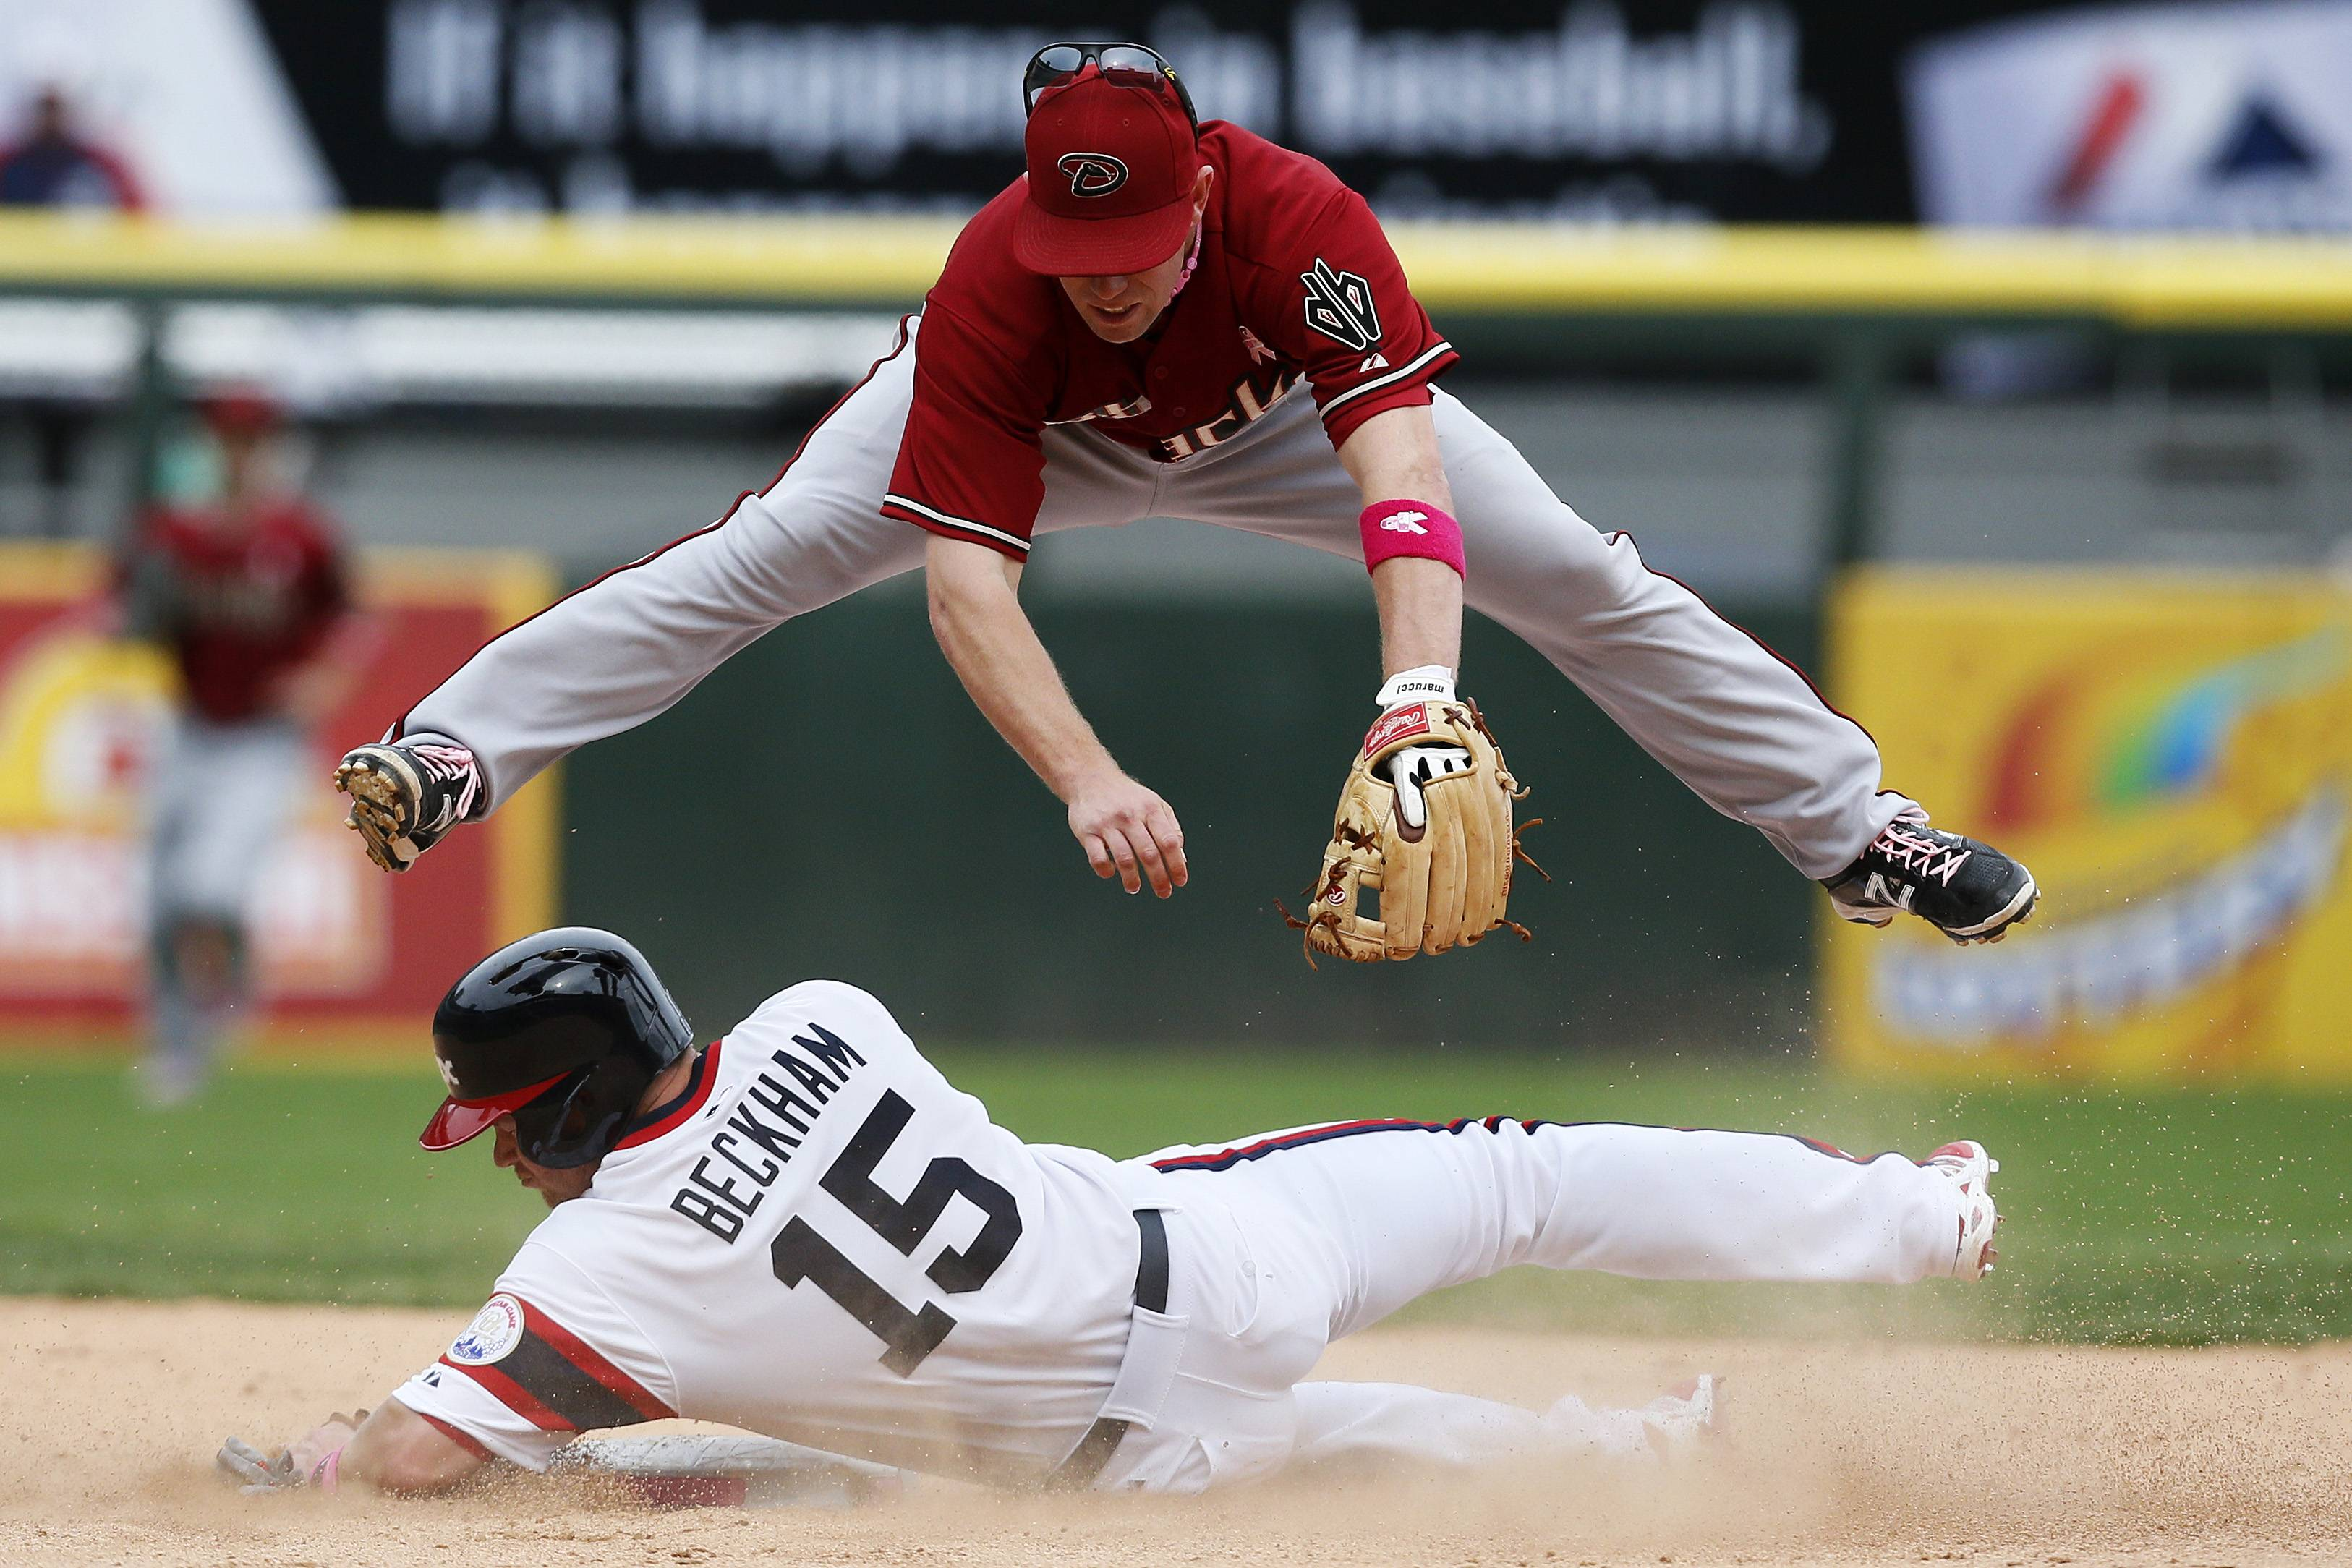 Arizona Diamondbacks second baseman Aaron Hill, top, forces out Chicago White Sox's Gordon Beckham on a double play to end the ninth inning of a baseball game on Sunday, May 11, 2014, in Chicago. The Diamondbacks won 5-1.